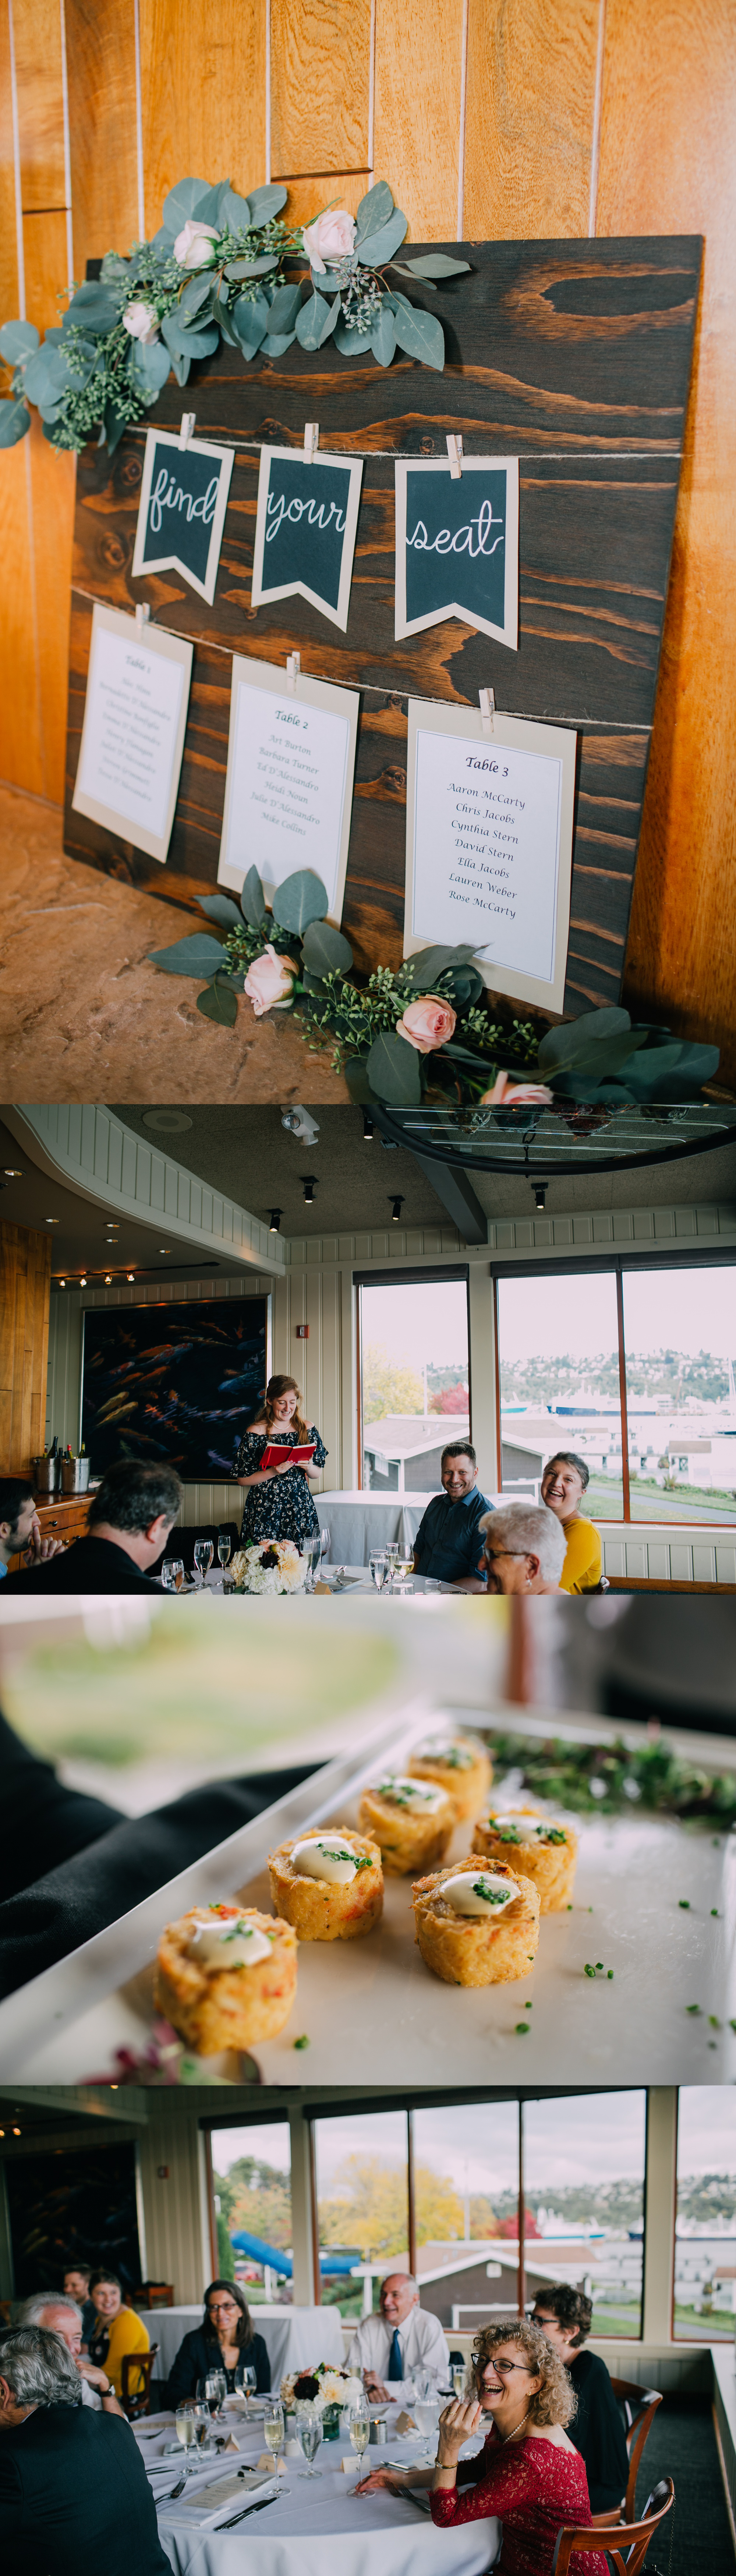 intimate small wedding photographer seattle washington pnw restaurant reception -2.jpg